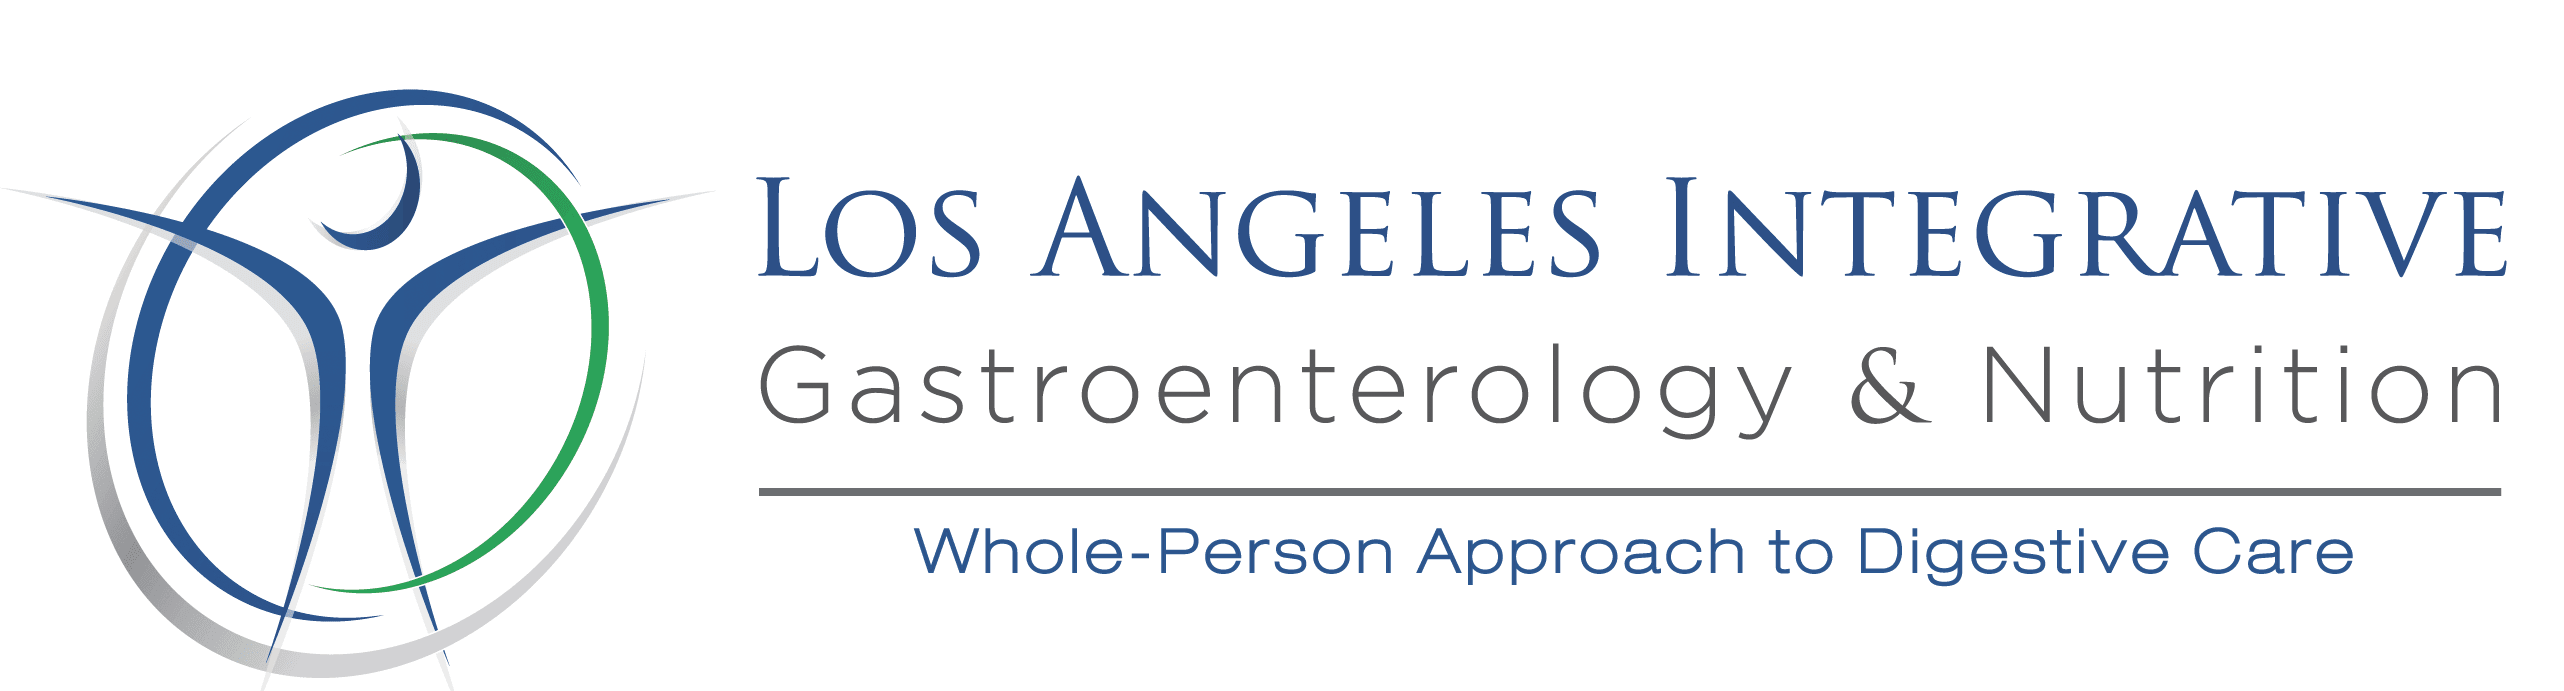 Los Angeles Integrative Gastroenterology & Nutrition